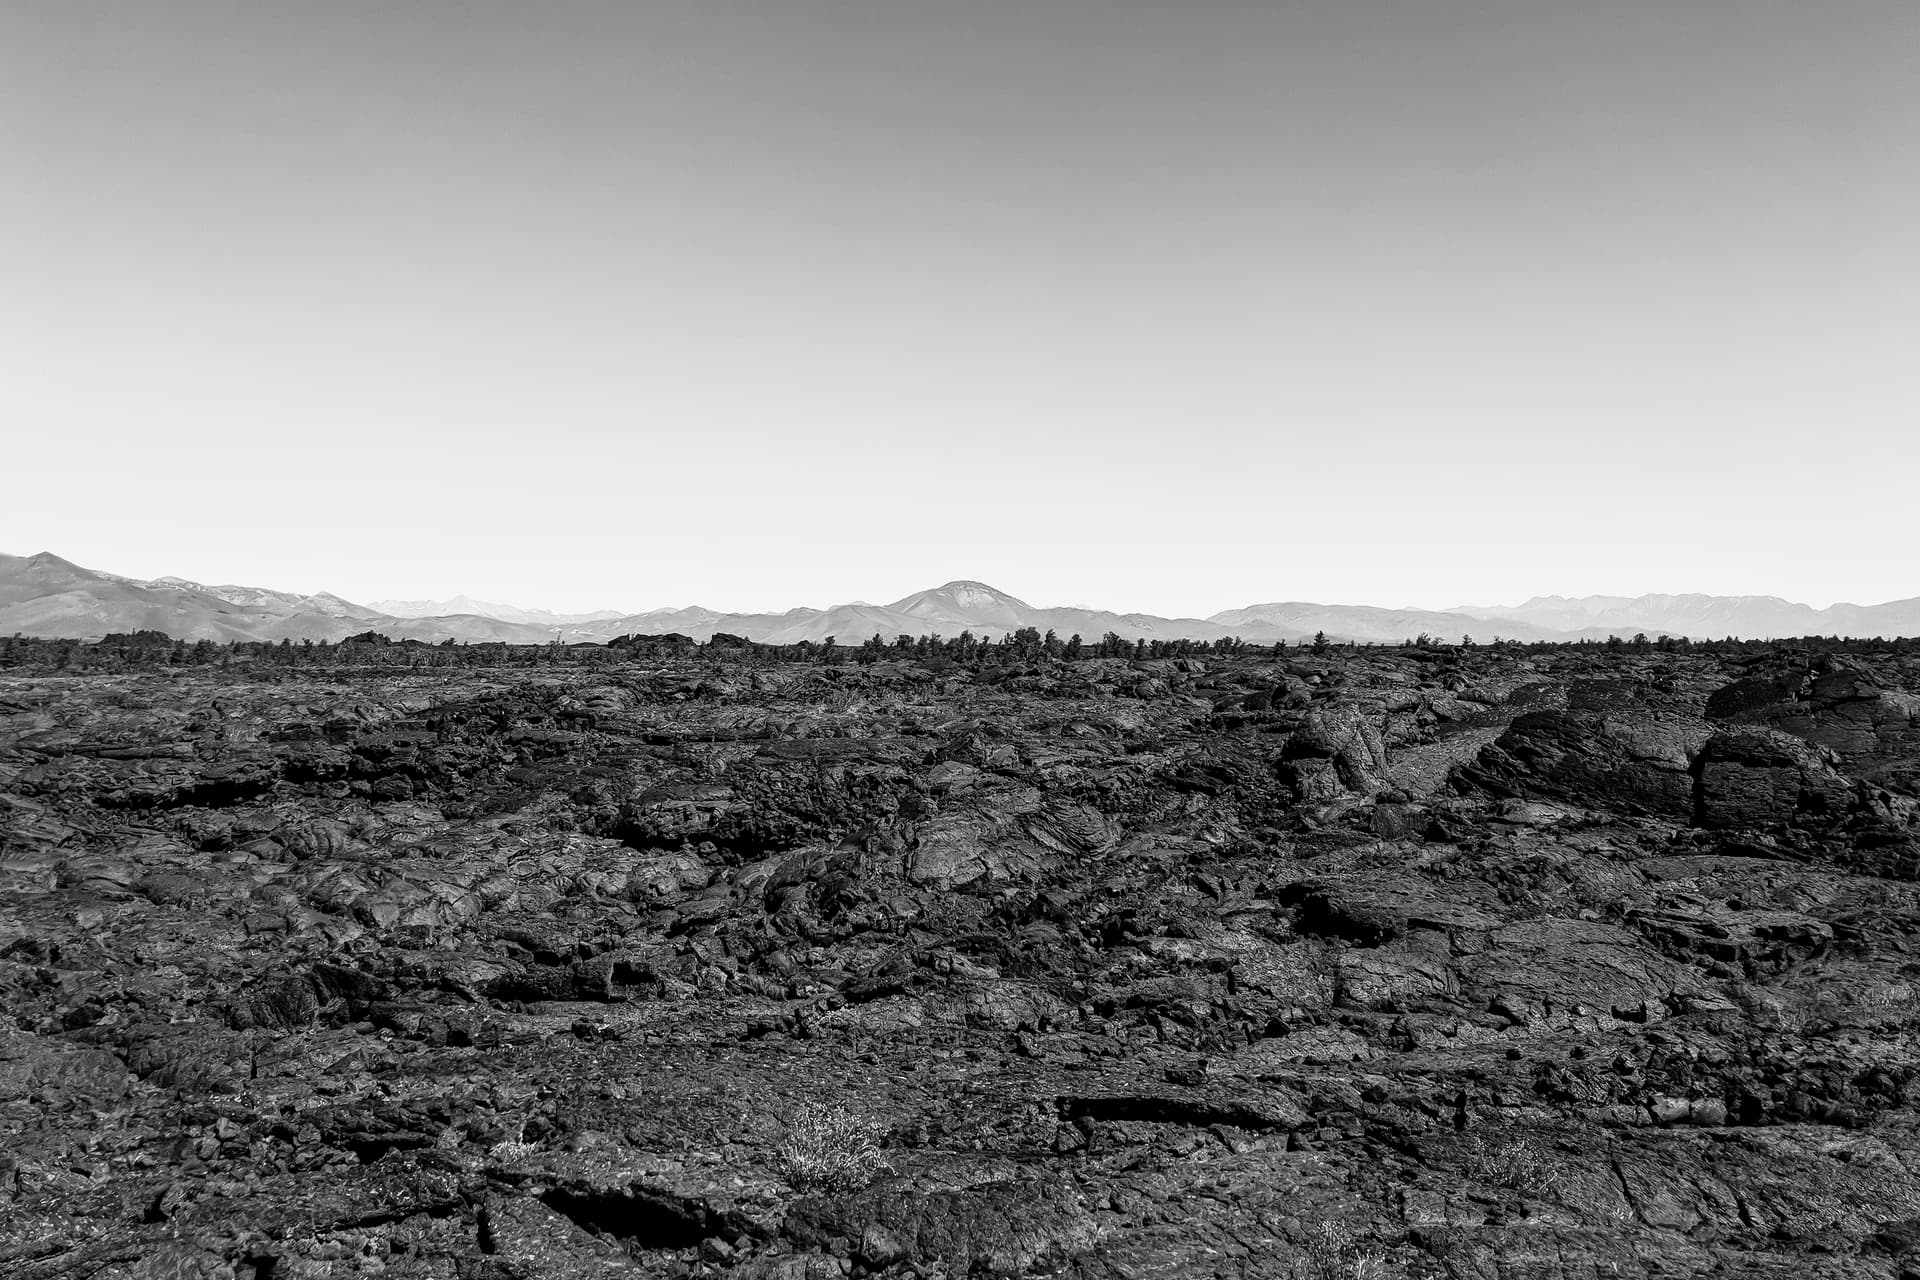 A field of pillowy lava flows  stretches towards the horizon. In the distance, a lava dome rises distinctly above the surrounding mountains.